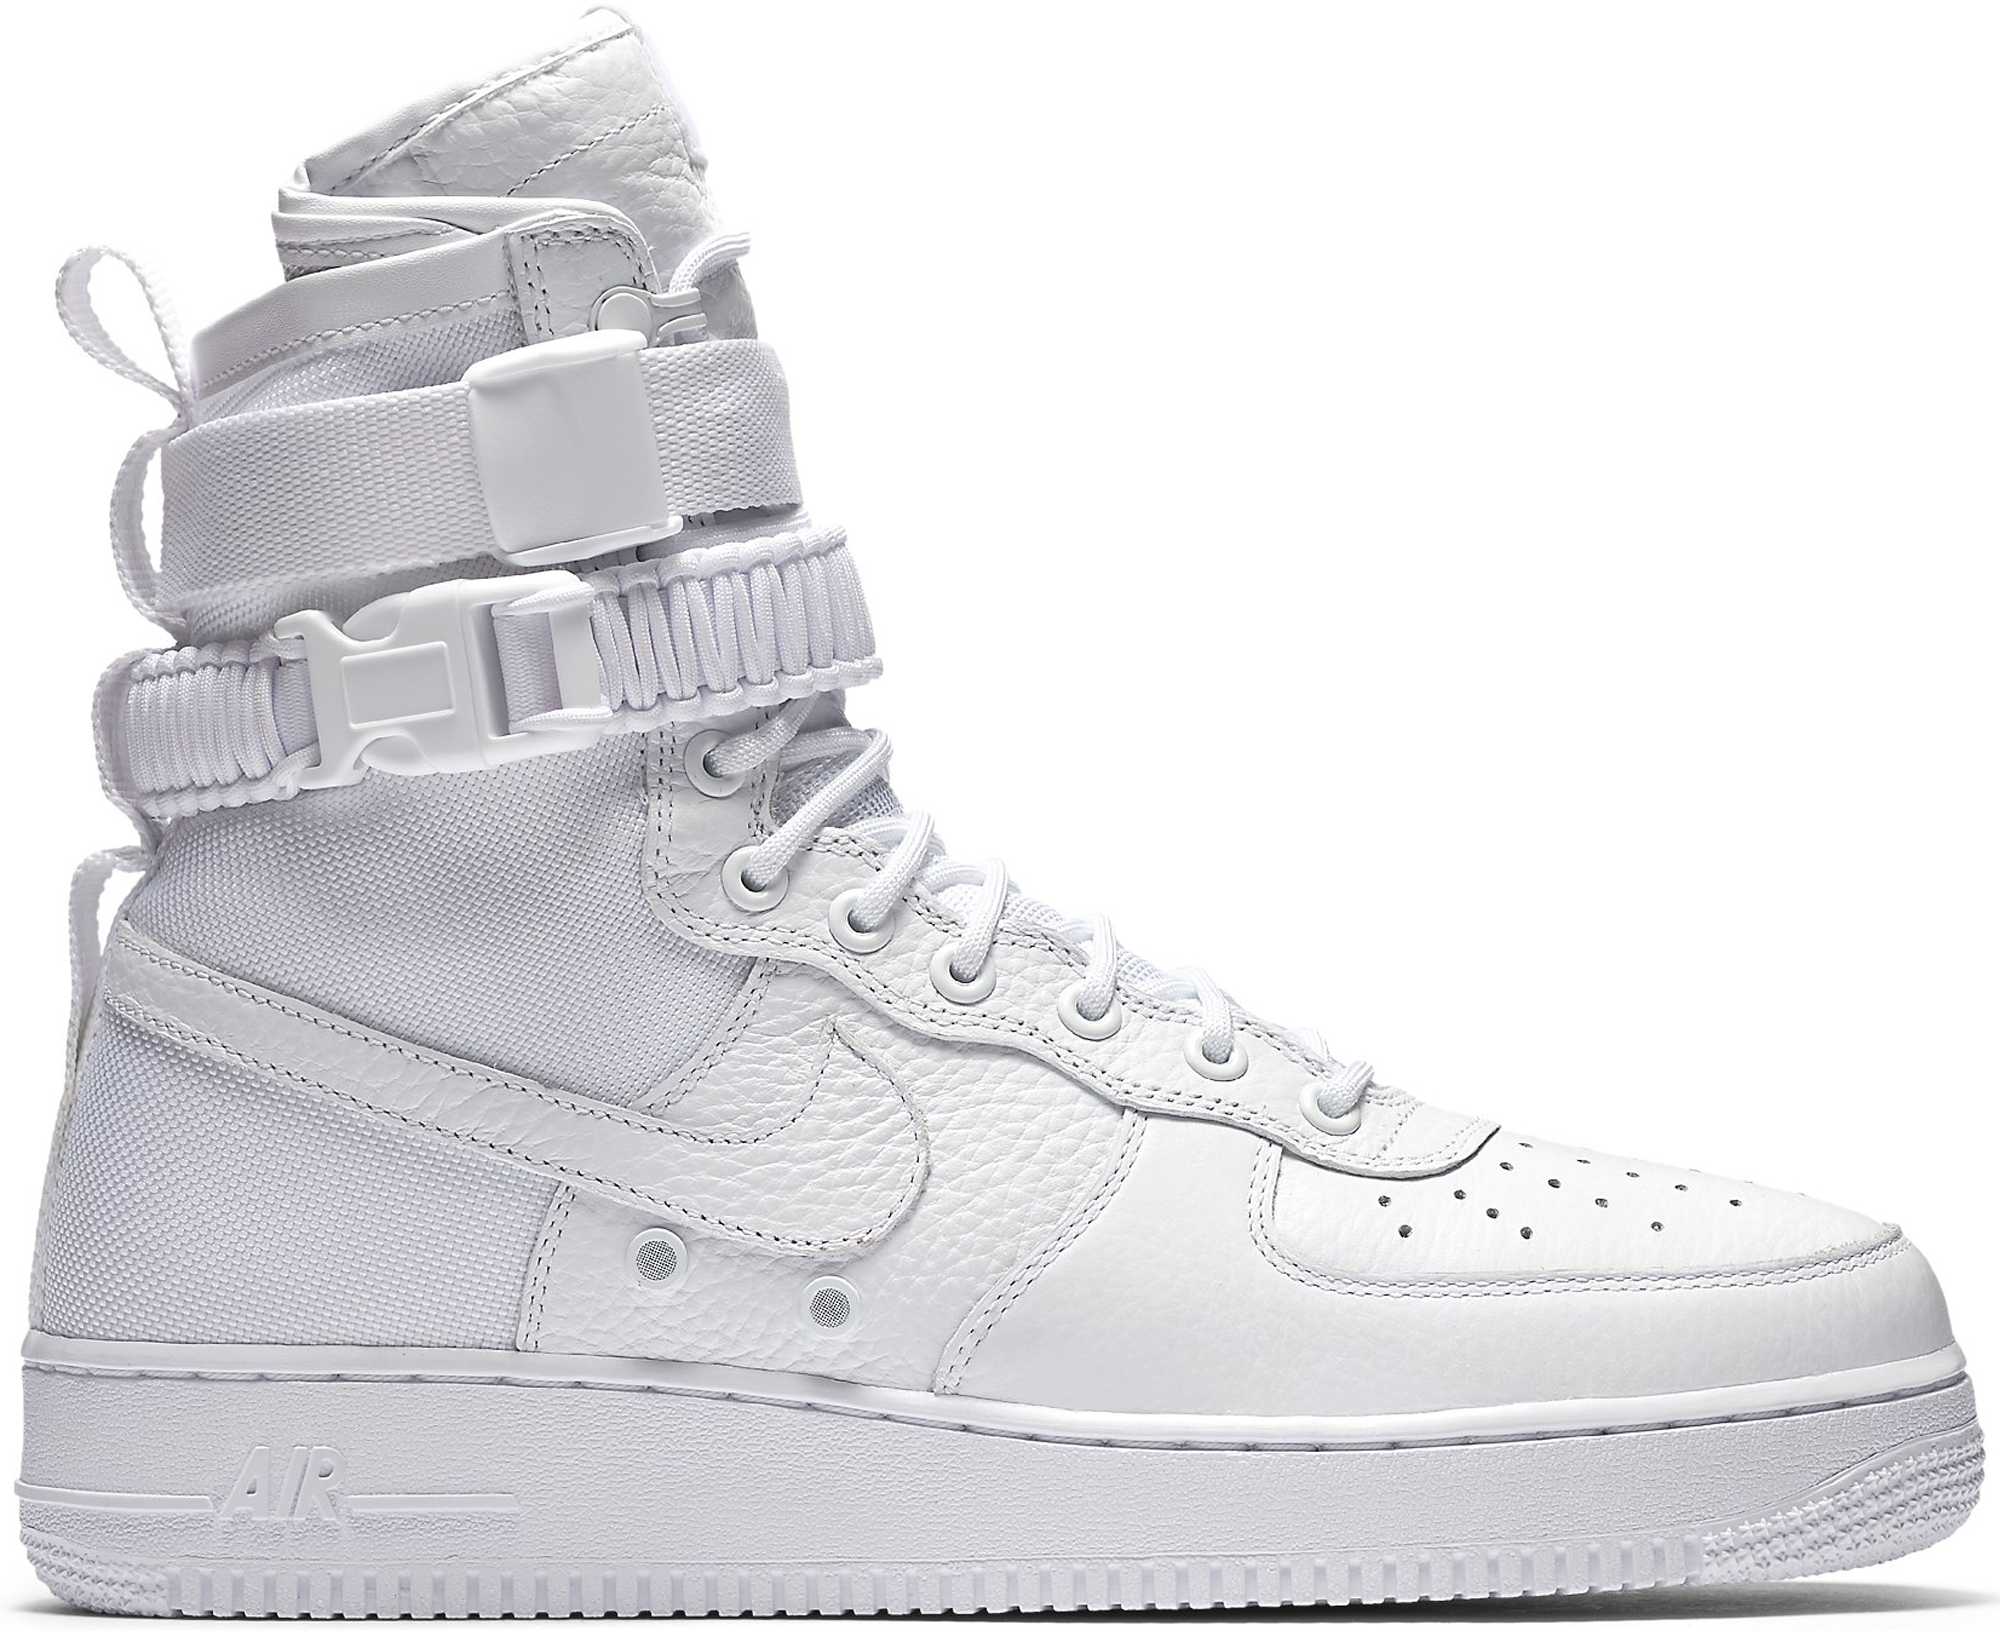 Nike SF Air Force 1 High White (2017)